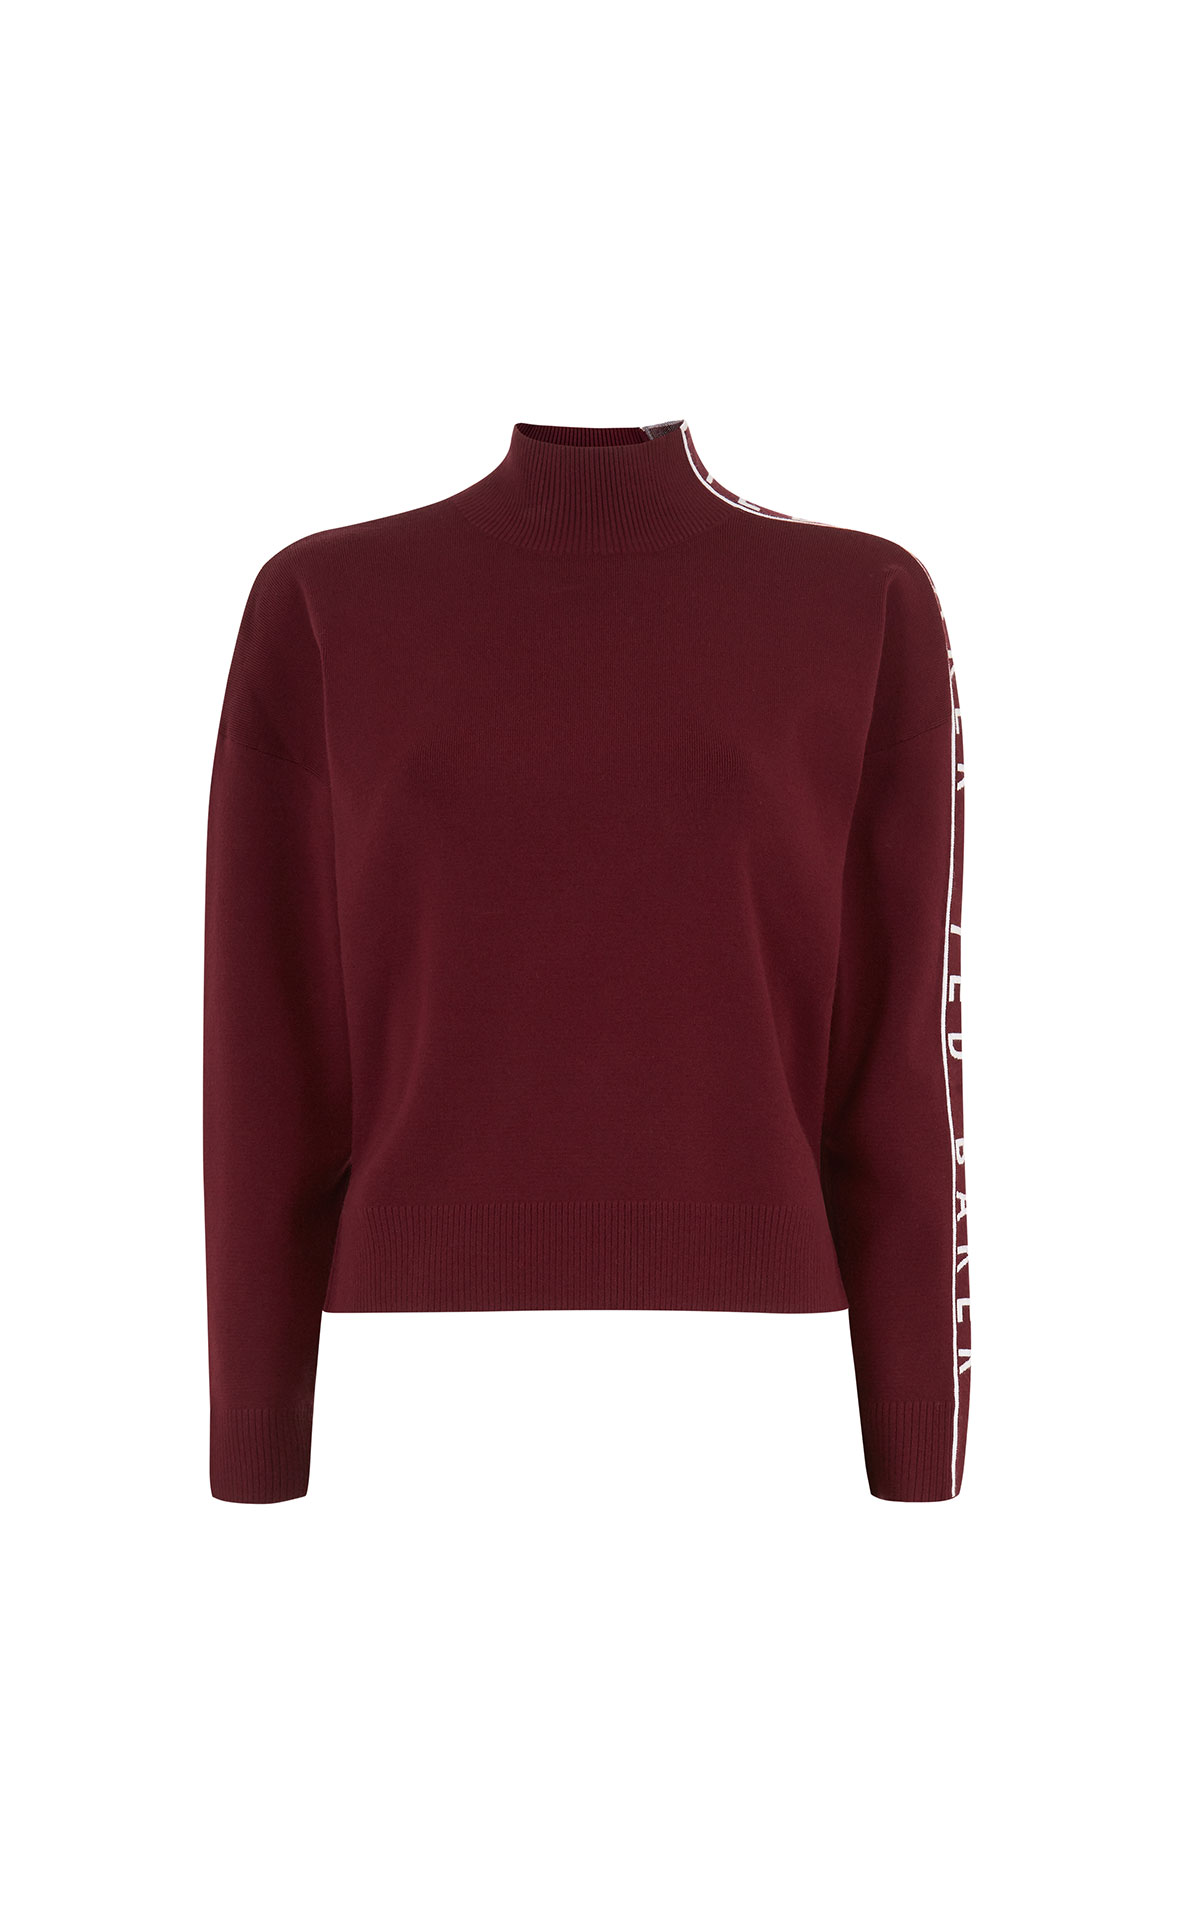 Ted Baker Yseena purple branded polo jumper from Bicester Village